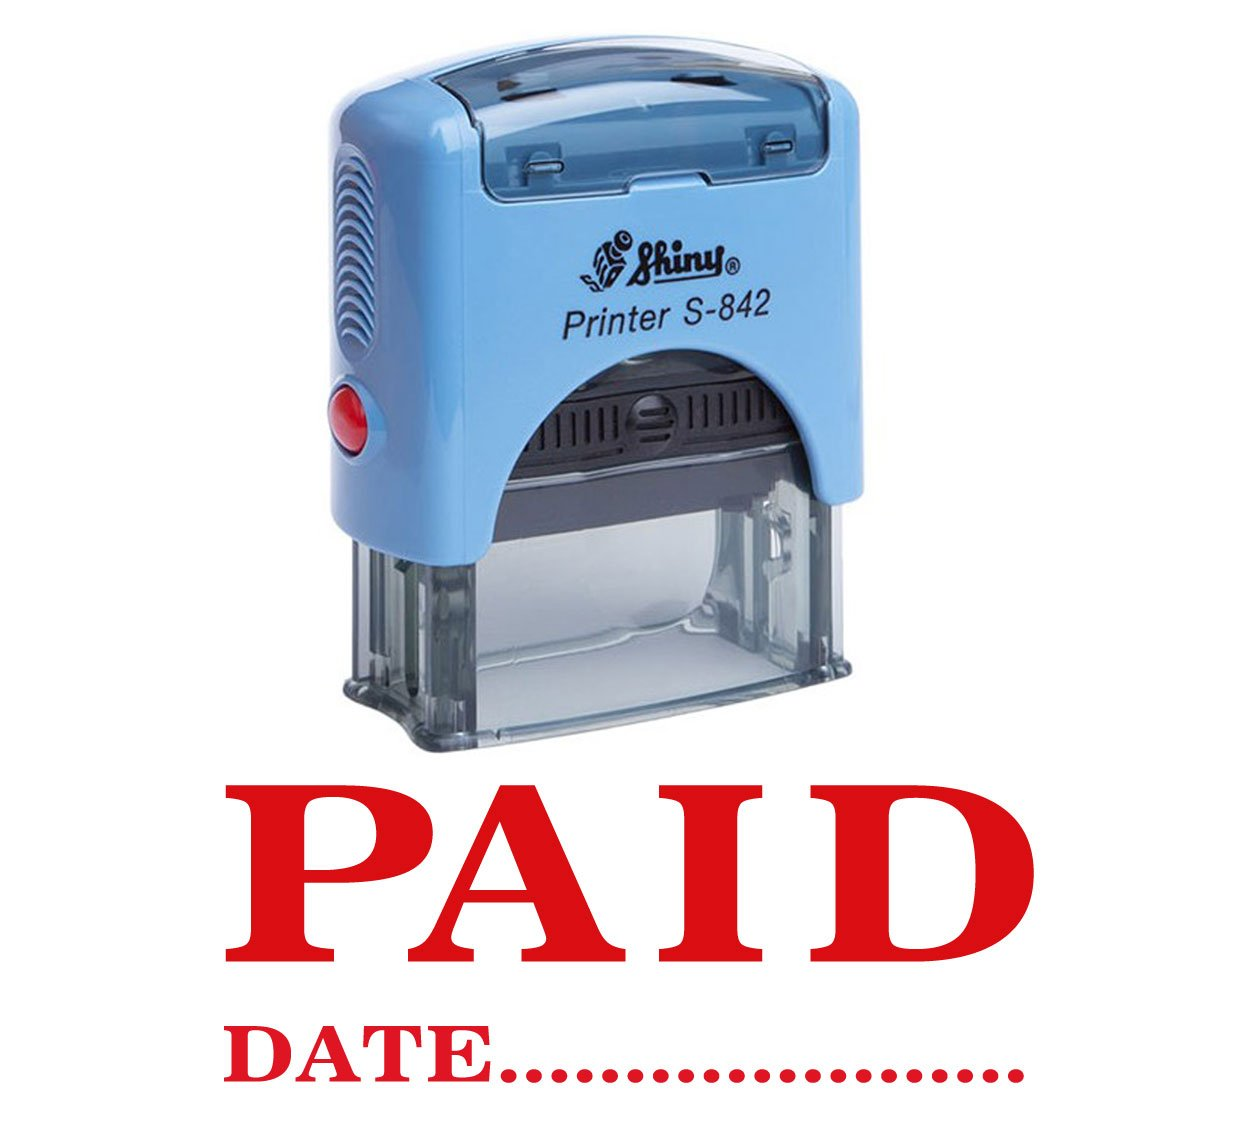 PAID WITH DATE Self Inking Rubber Stamp Office Stationery Custom Shiny Stamp